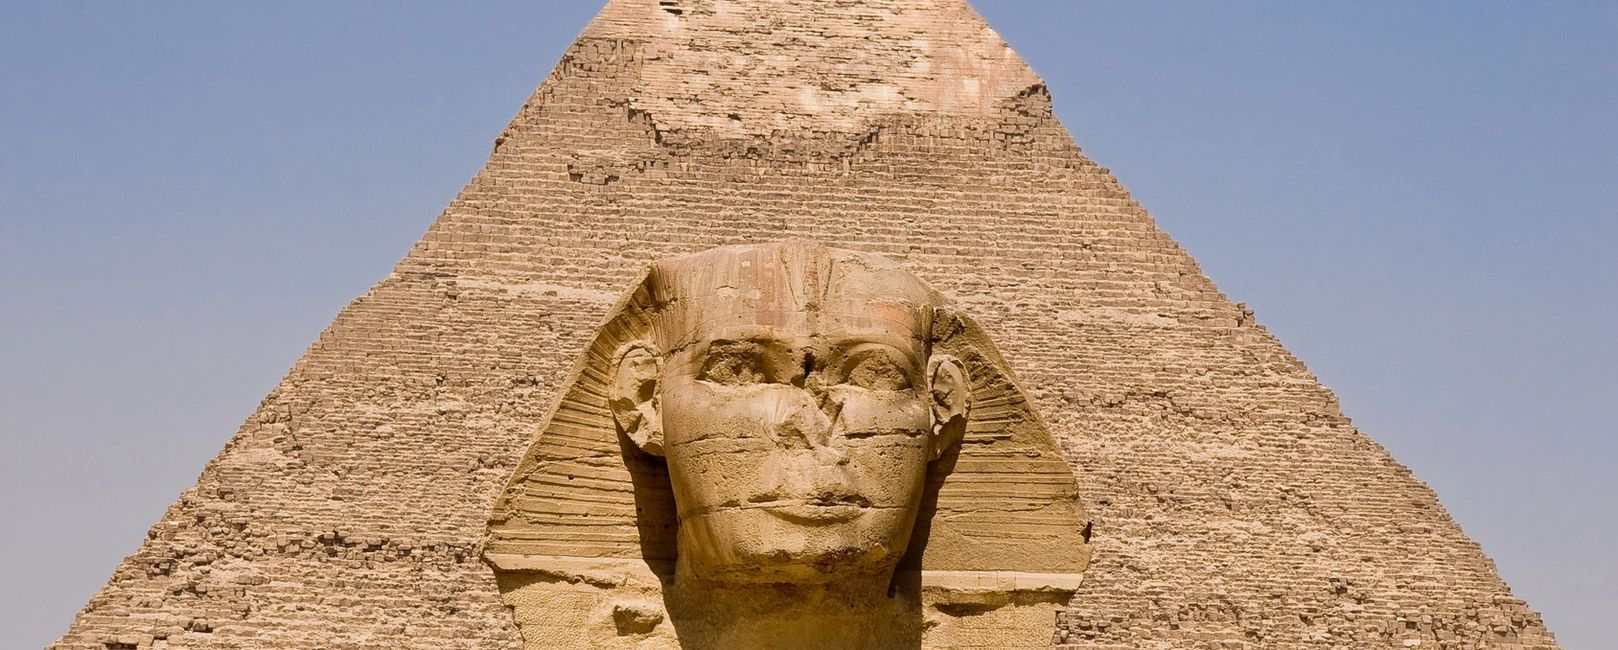 Egypt is the destination we started with in 1995...  working with Quest Travel and Mohamed Nazmy